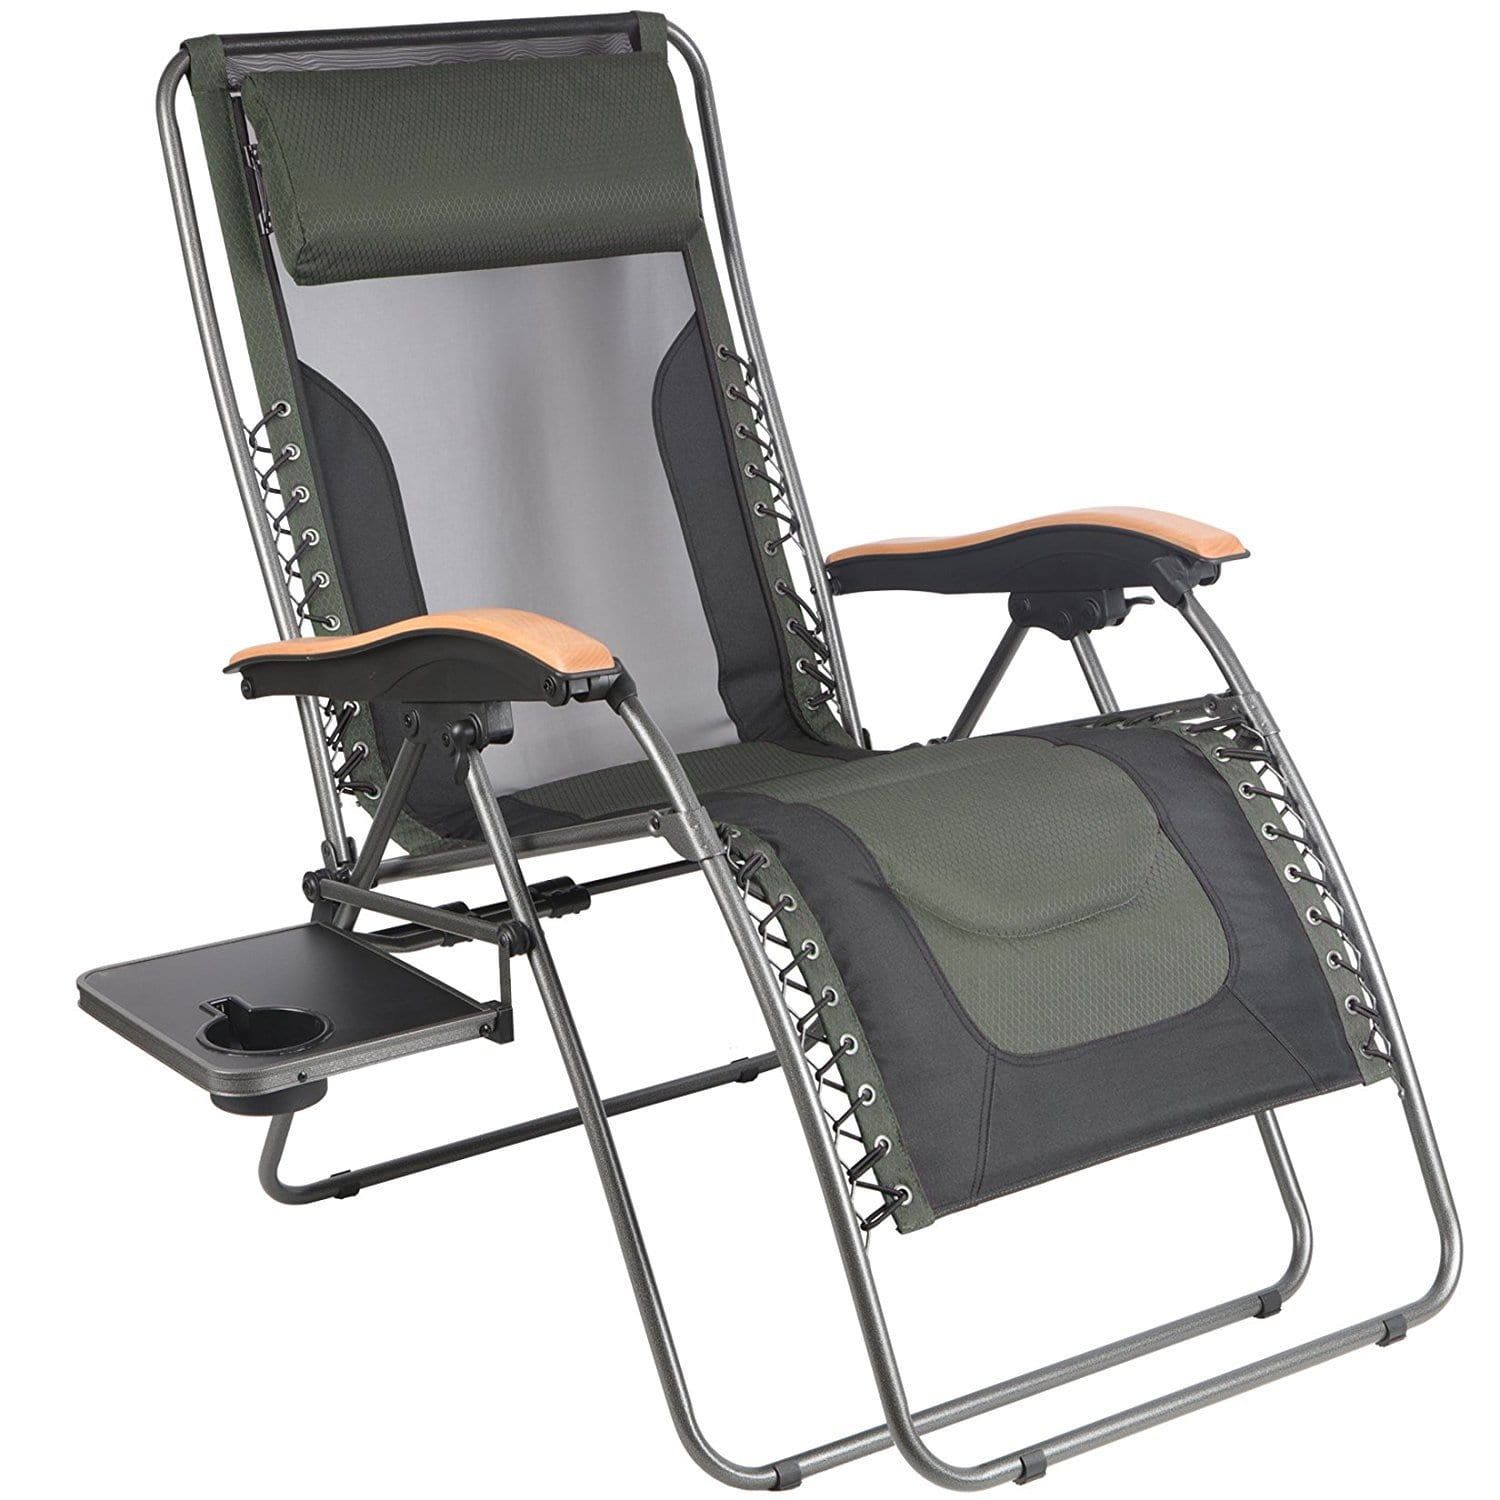 The PORTAL Oversized Mesh Back Zero Gravity Recliner Chair